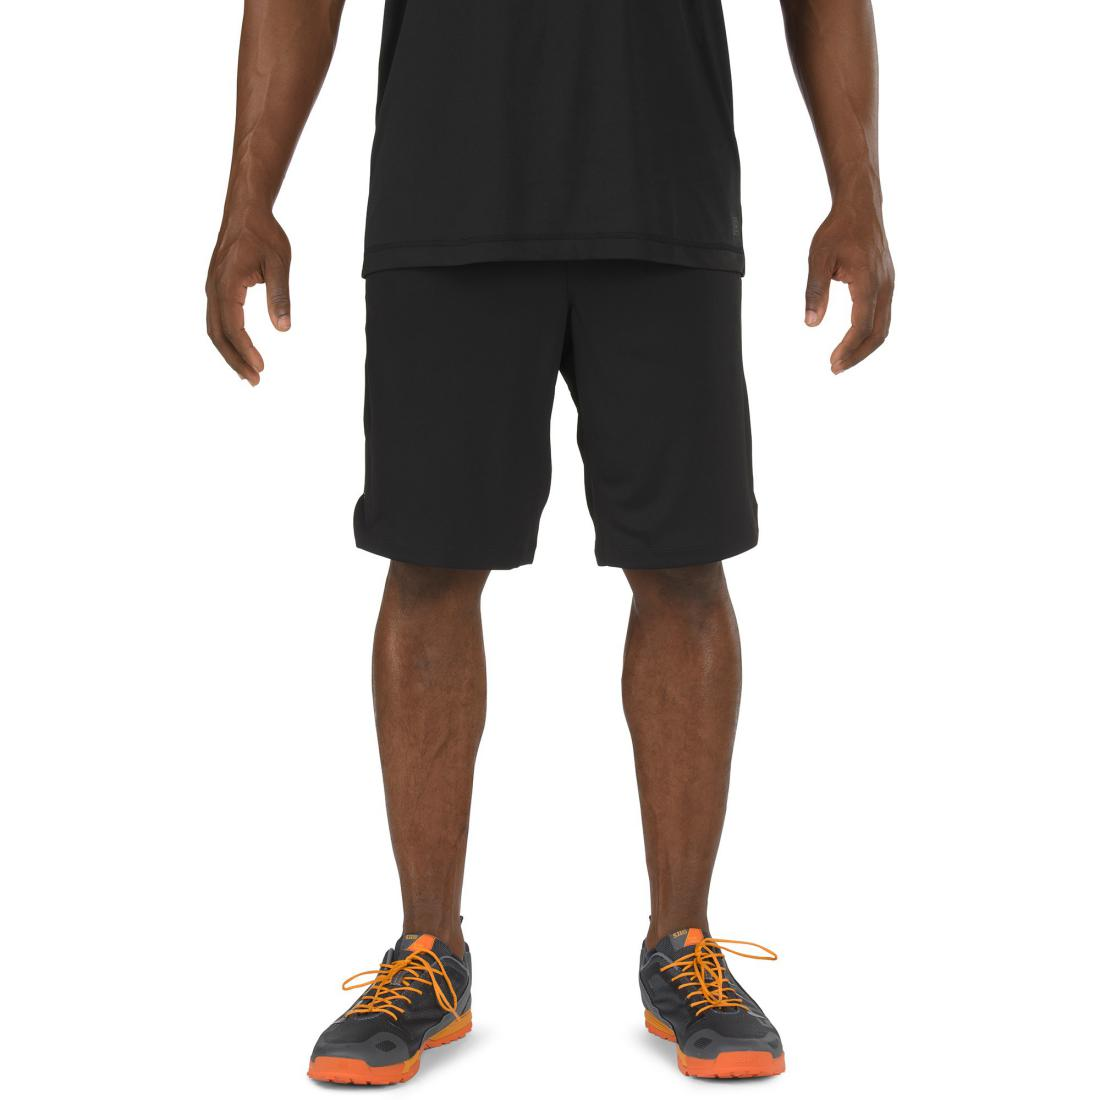 5.11 Tactical 43061 Men Utility Pt Shorts Black